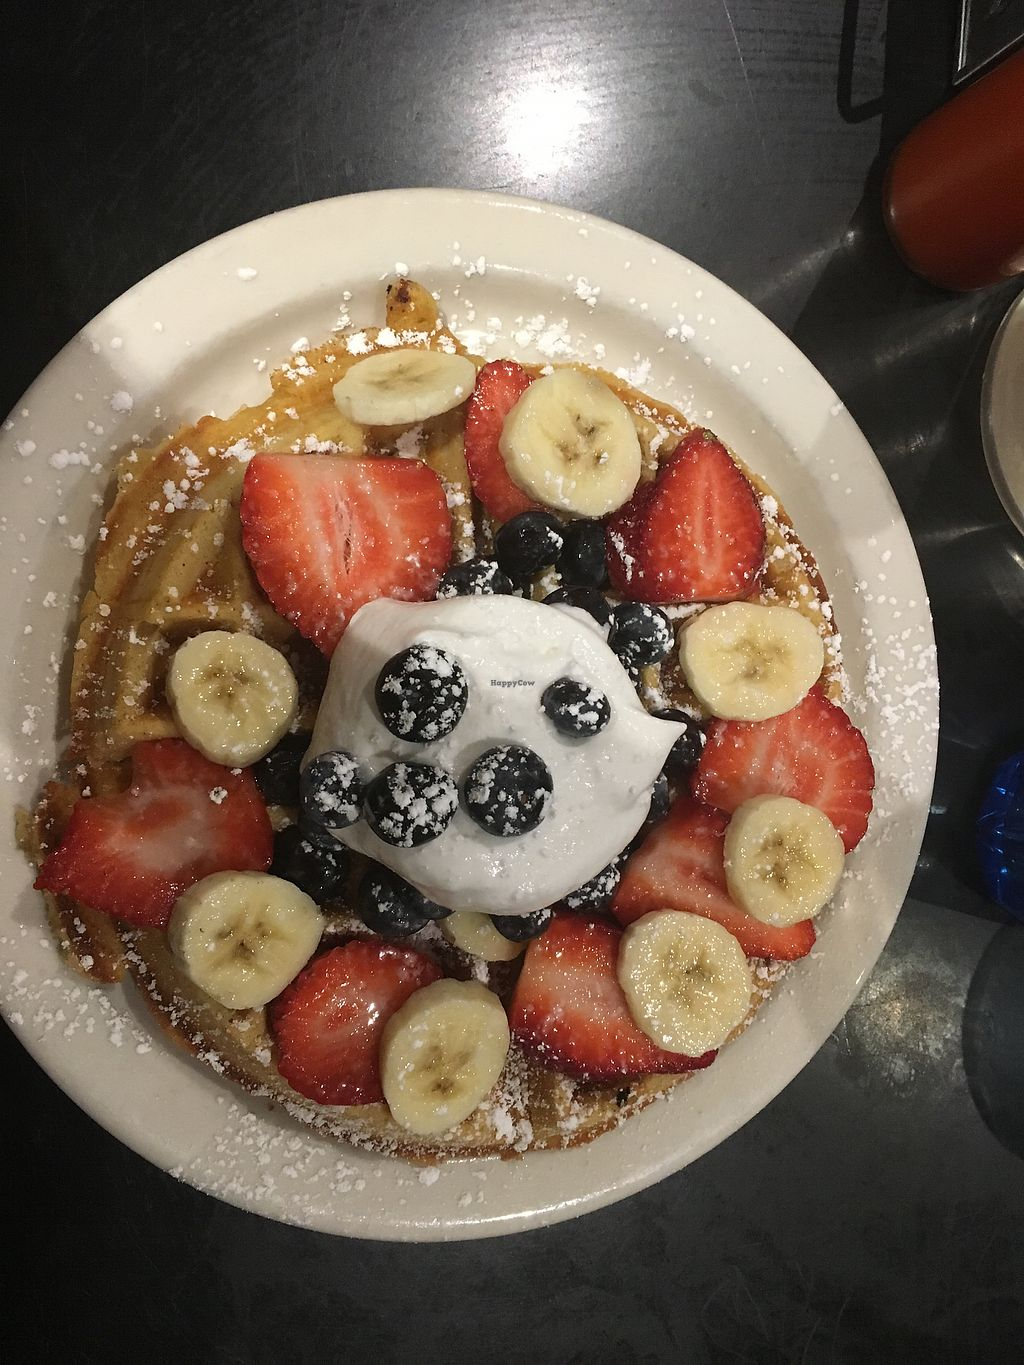 "Photo of Champs Diner  by <a href=""/members/profile/Franzi-Frenz"">Franzi-Frenz</a> <br/>Vegan waffle  <br/> February 20, 2018  - <a href='/contact/abuse/image/24286/361526'>Report</a>"